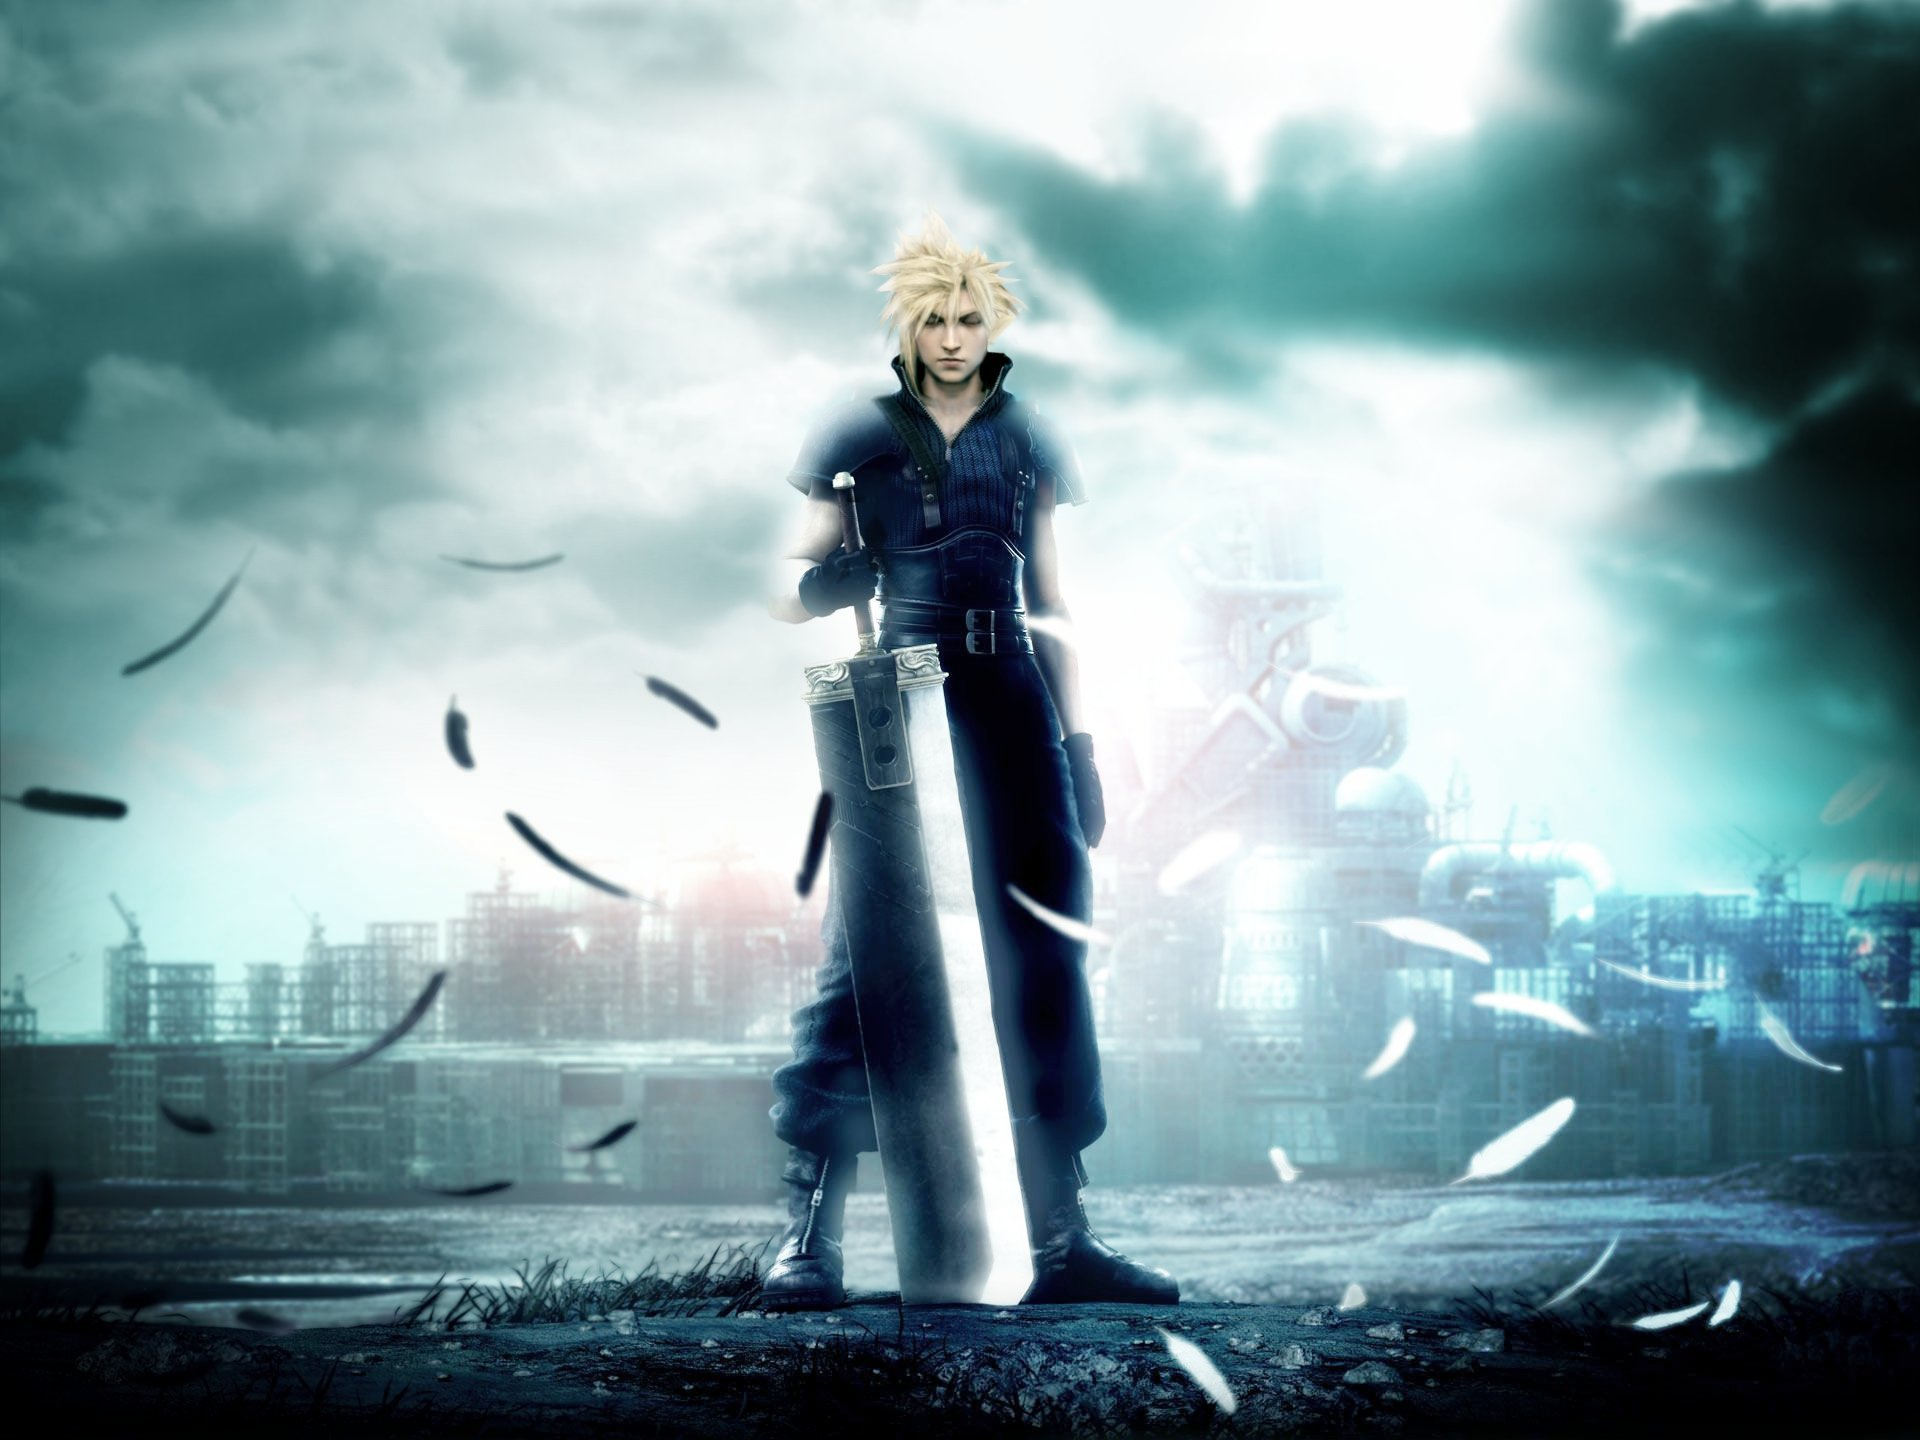 Awesome Final Fantasy 7 (VII) Advent Children free background ID:226956 for hd 1920x1440 desktop